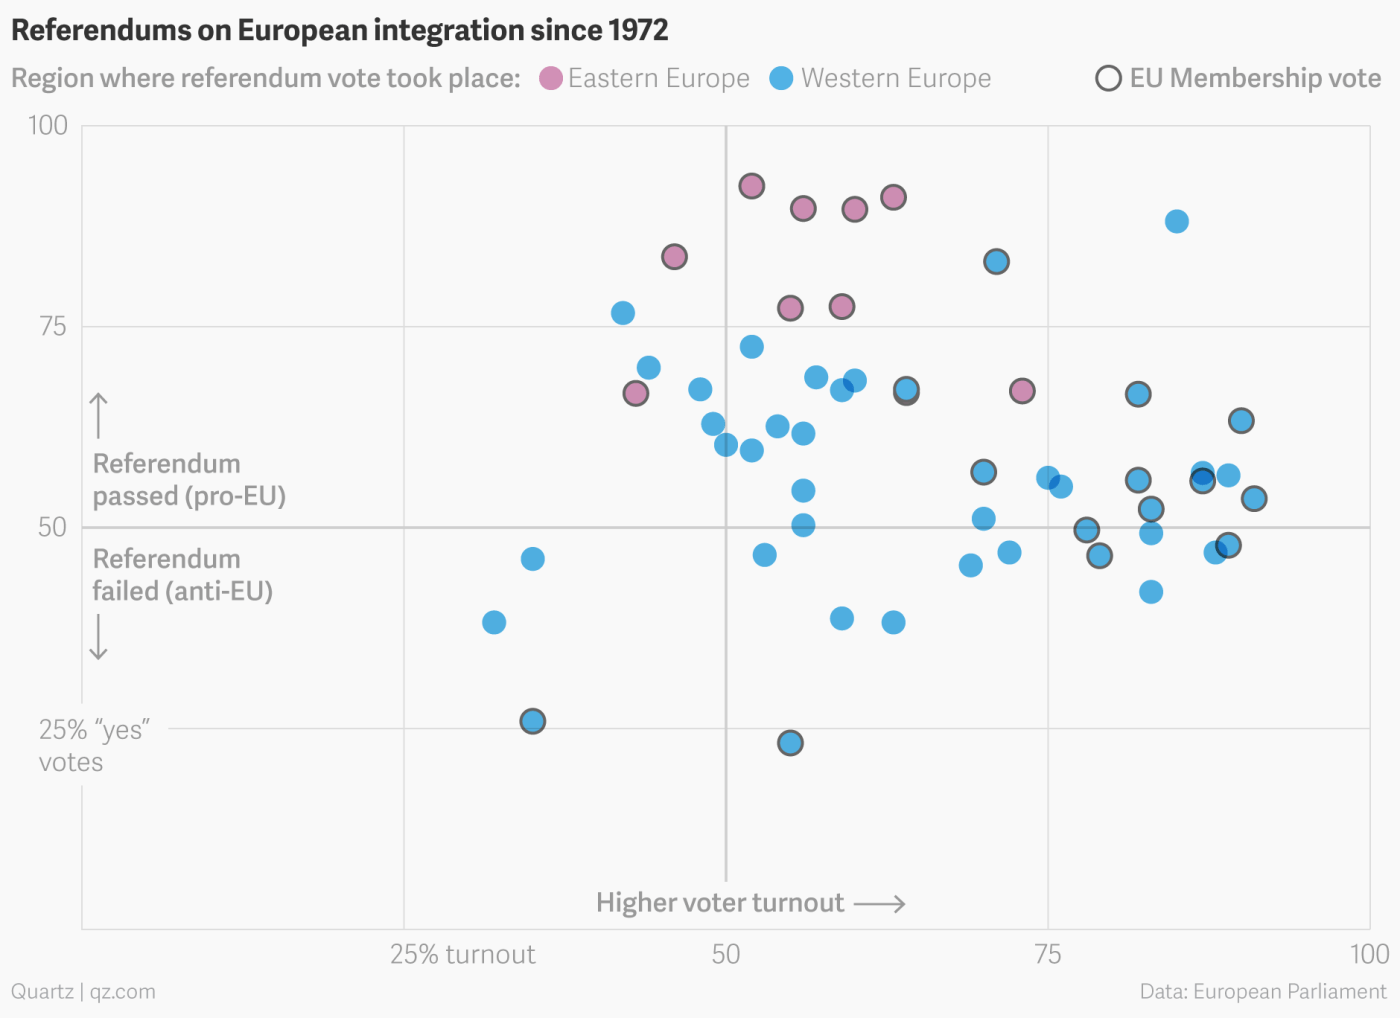 Angst, apathy, and enthusiasm: 40 years of EU referendums